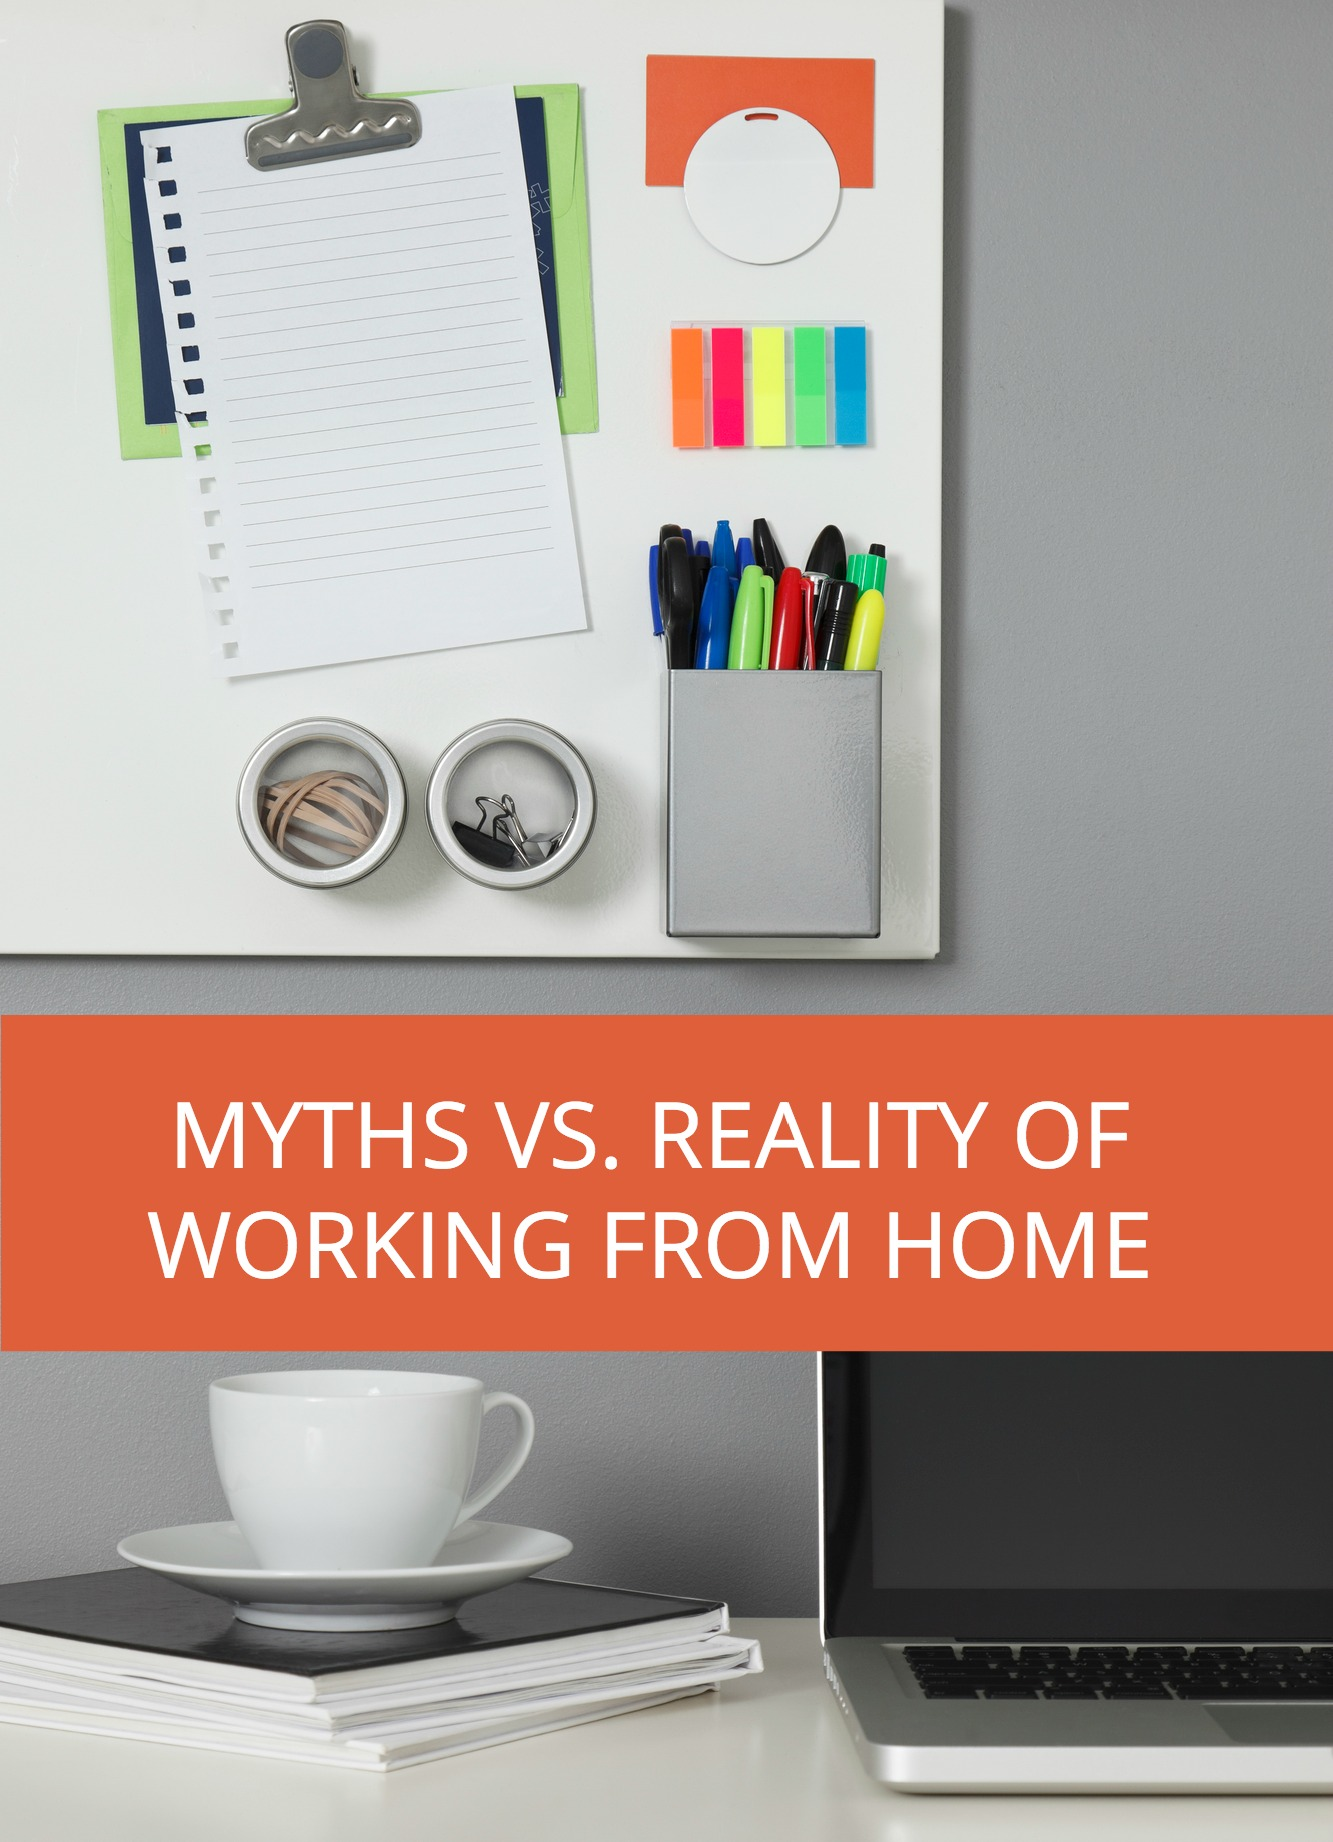 If you work from home and you're a mom, here's what you can expect (it's good to know the perceptions out there so you can balance with reality!)